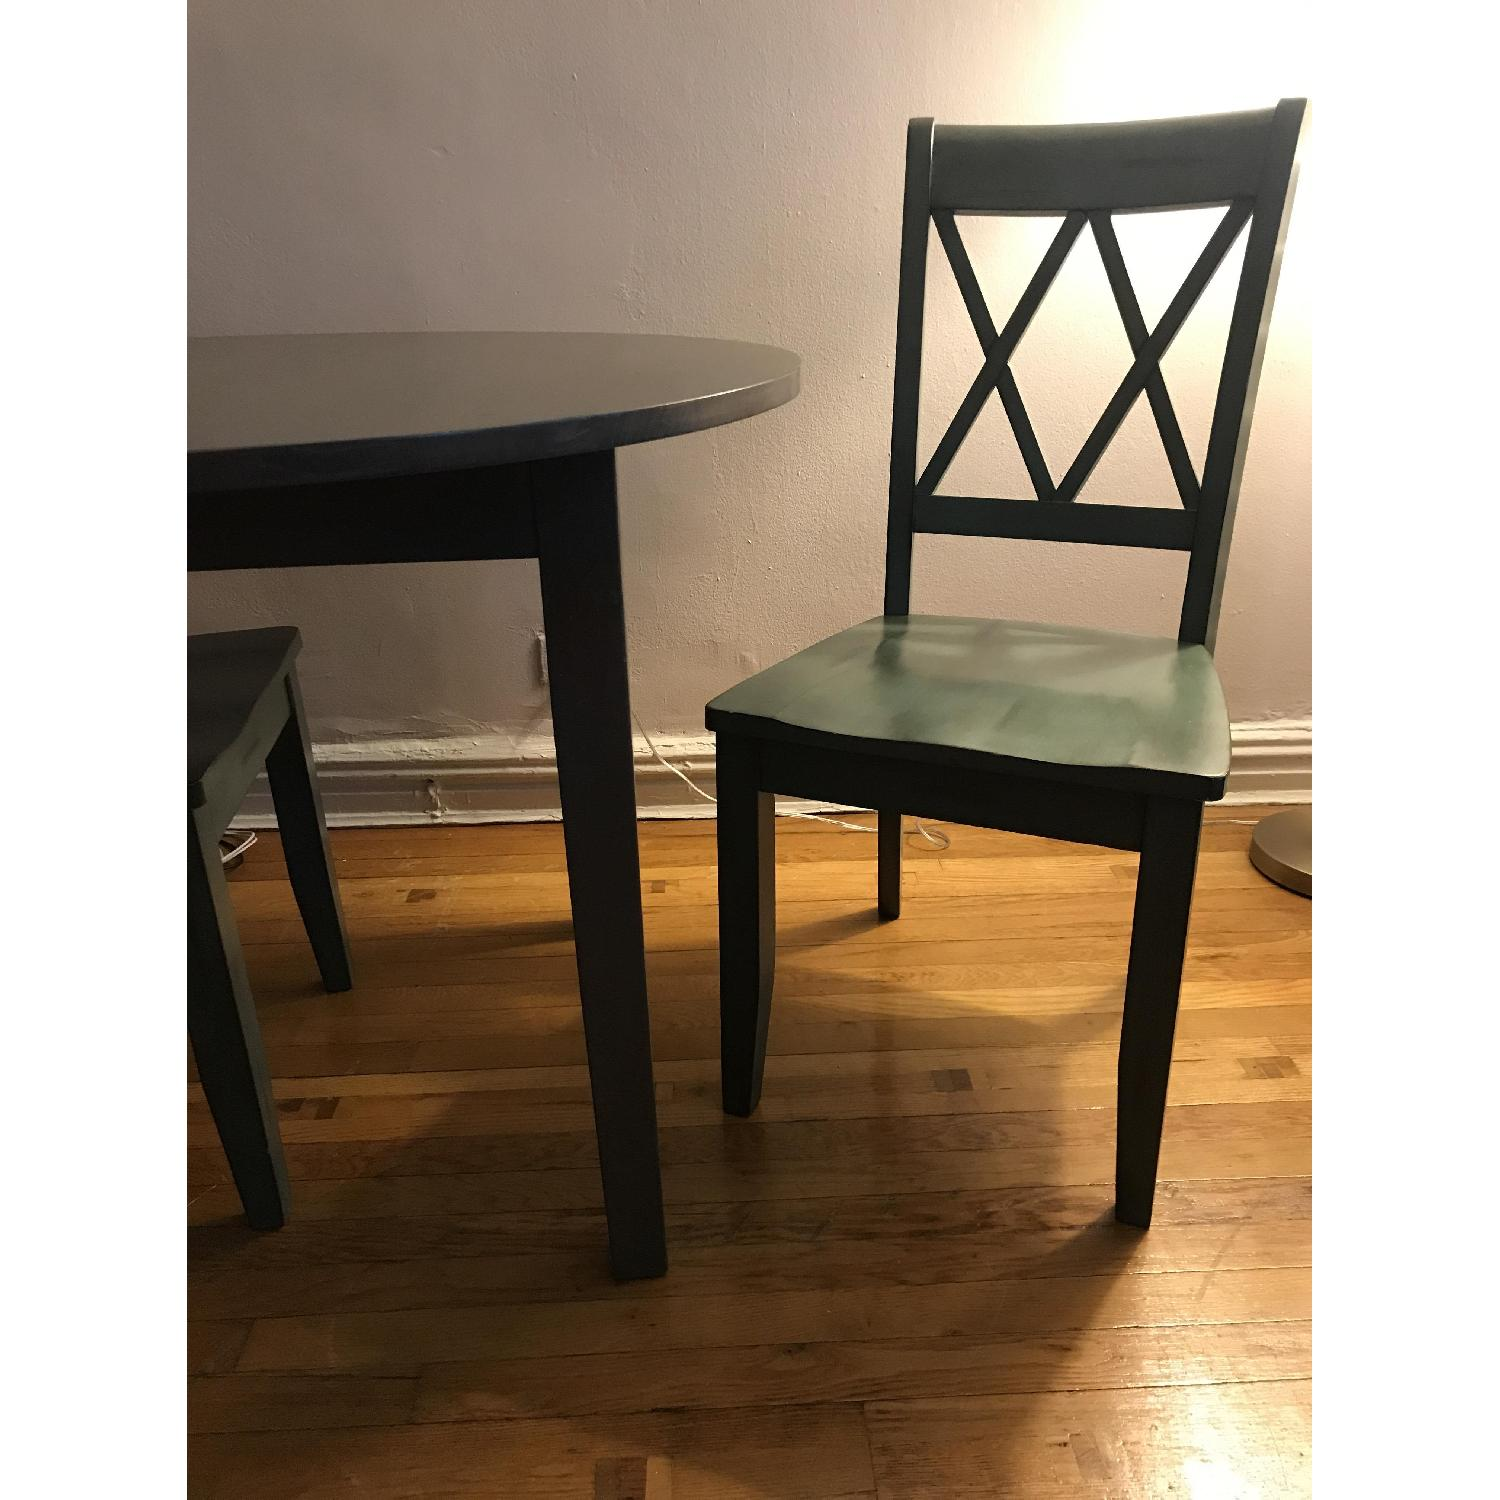 Safavieh Holly French Dining Table w/ 2 Chairs - image-3